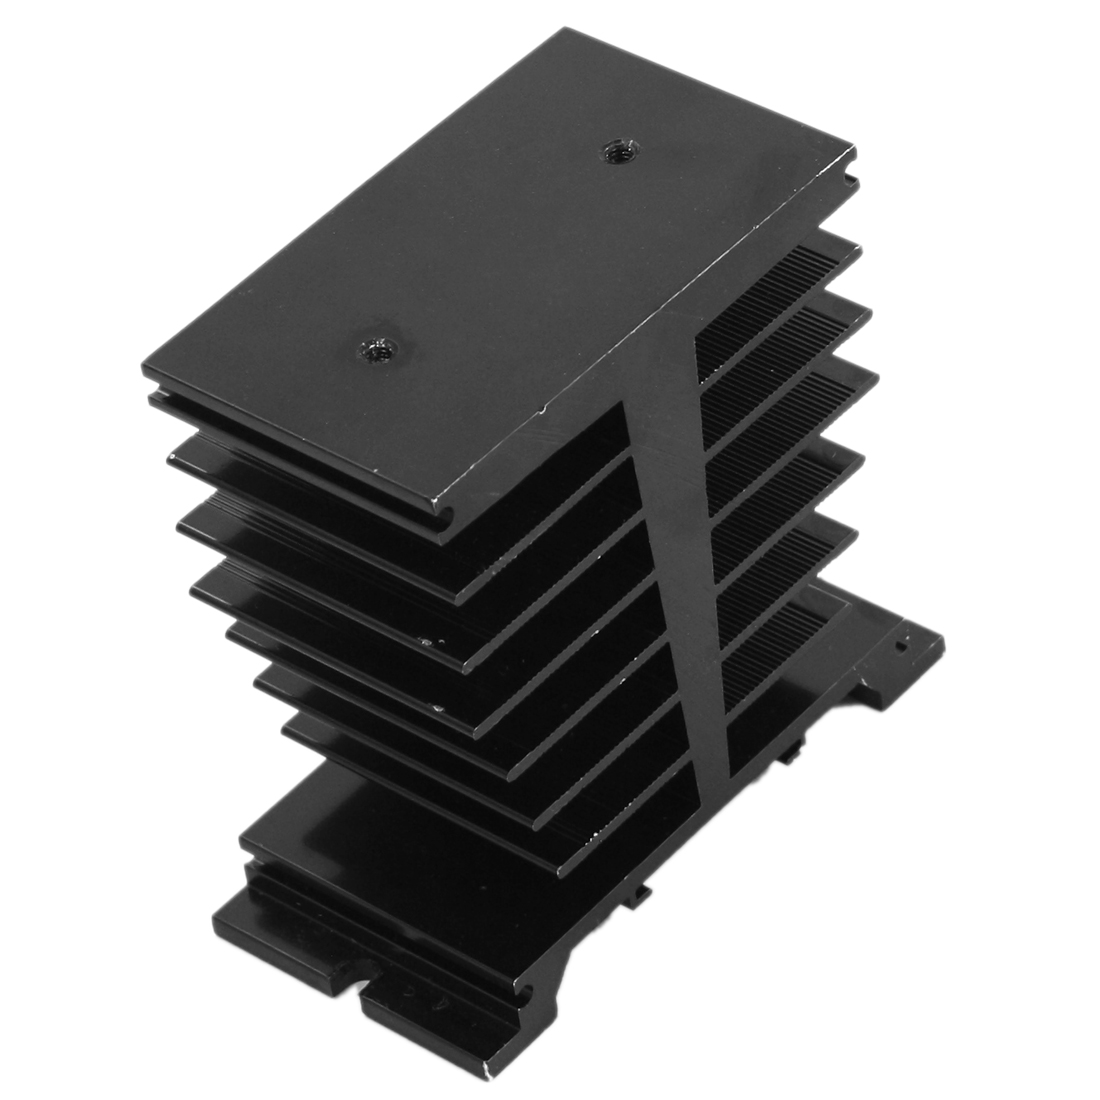 95mm x 50mm x 100mm 8 Layers Black Aluminium Solid State Relay Heatsink Heat Diffuse Dissipation Cooler Fin